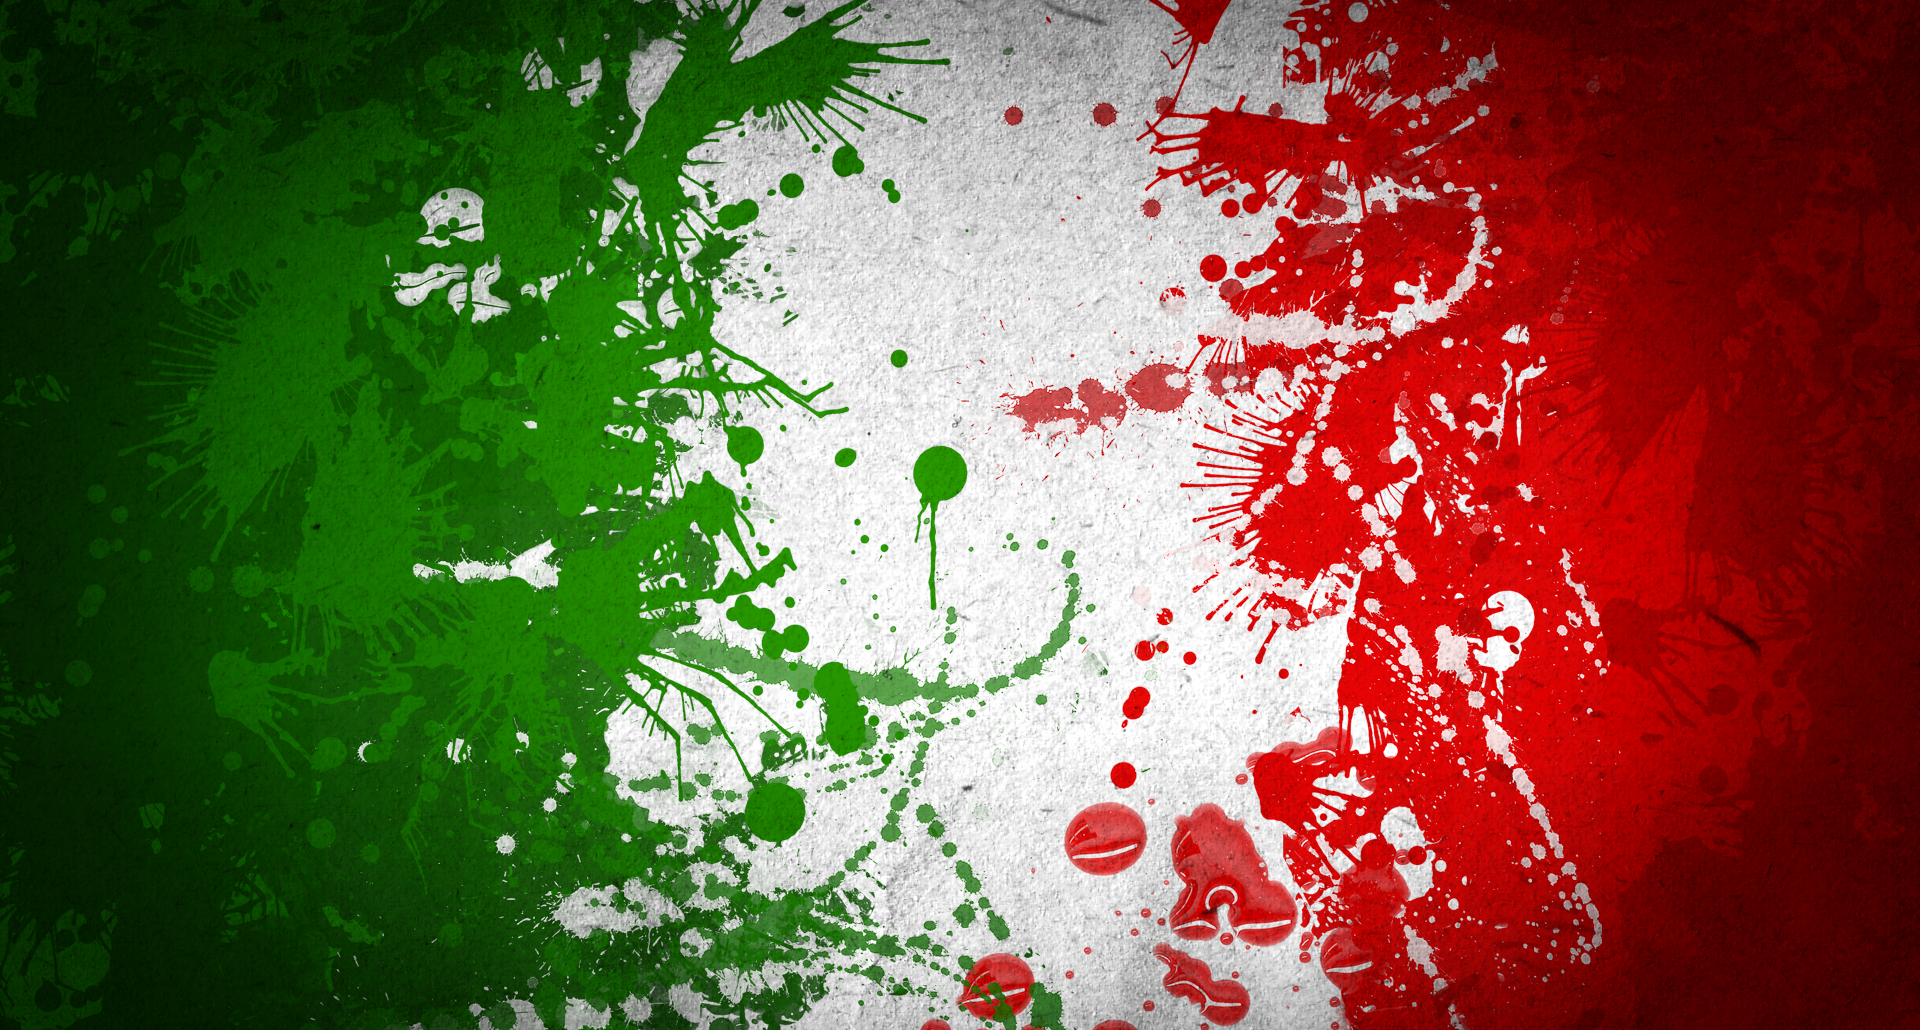 Wallpapers Of Italy Italian Wallpapers For Desktop Flag Art Italy Wallpaper High